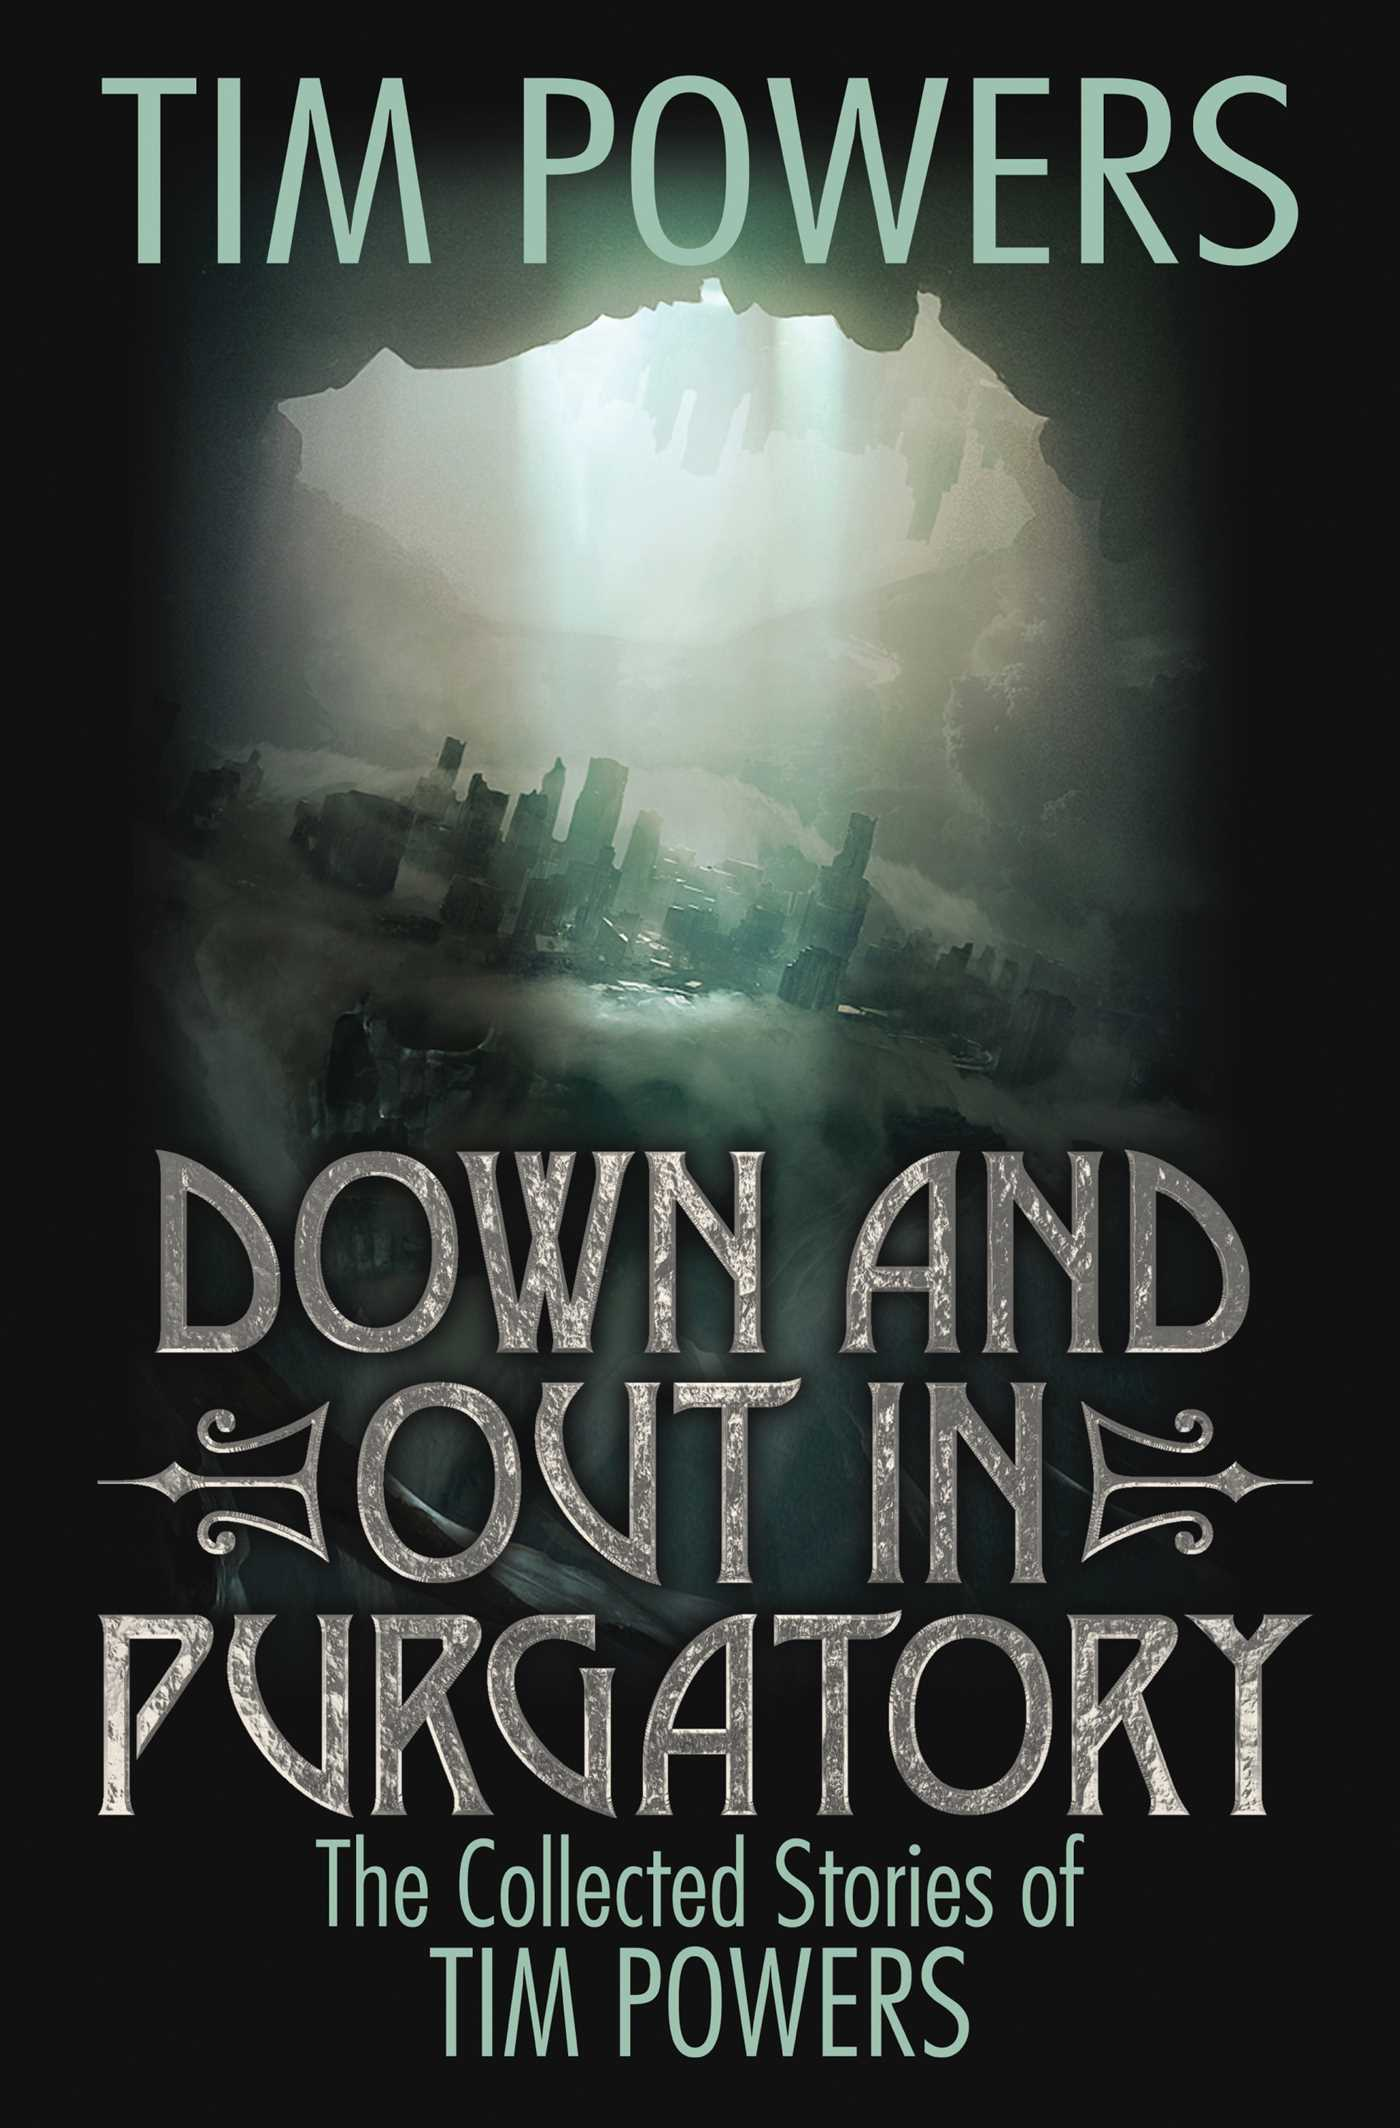 Down and out in purgatory 9781481482790 hr